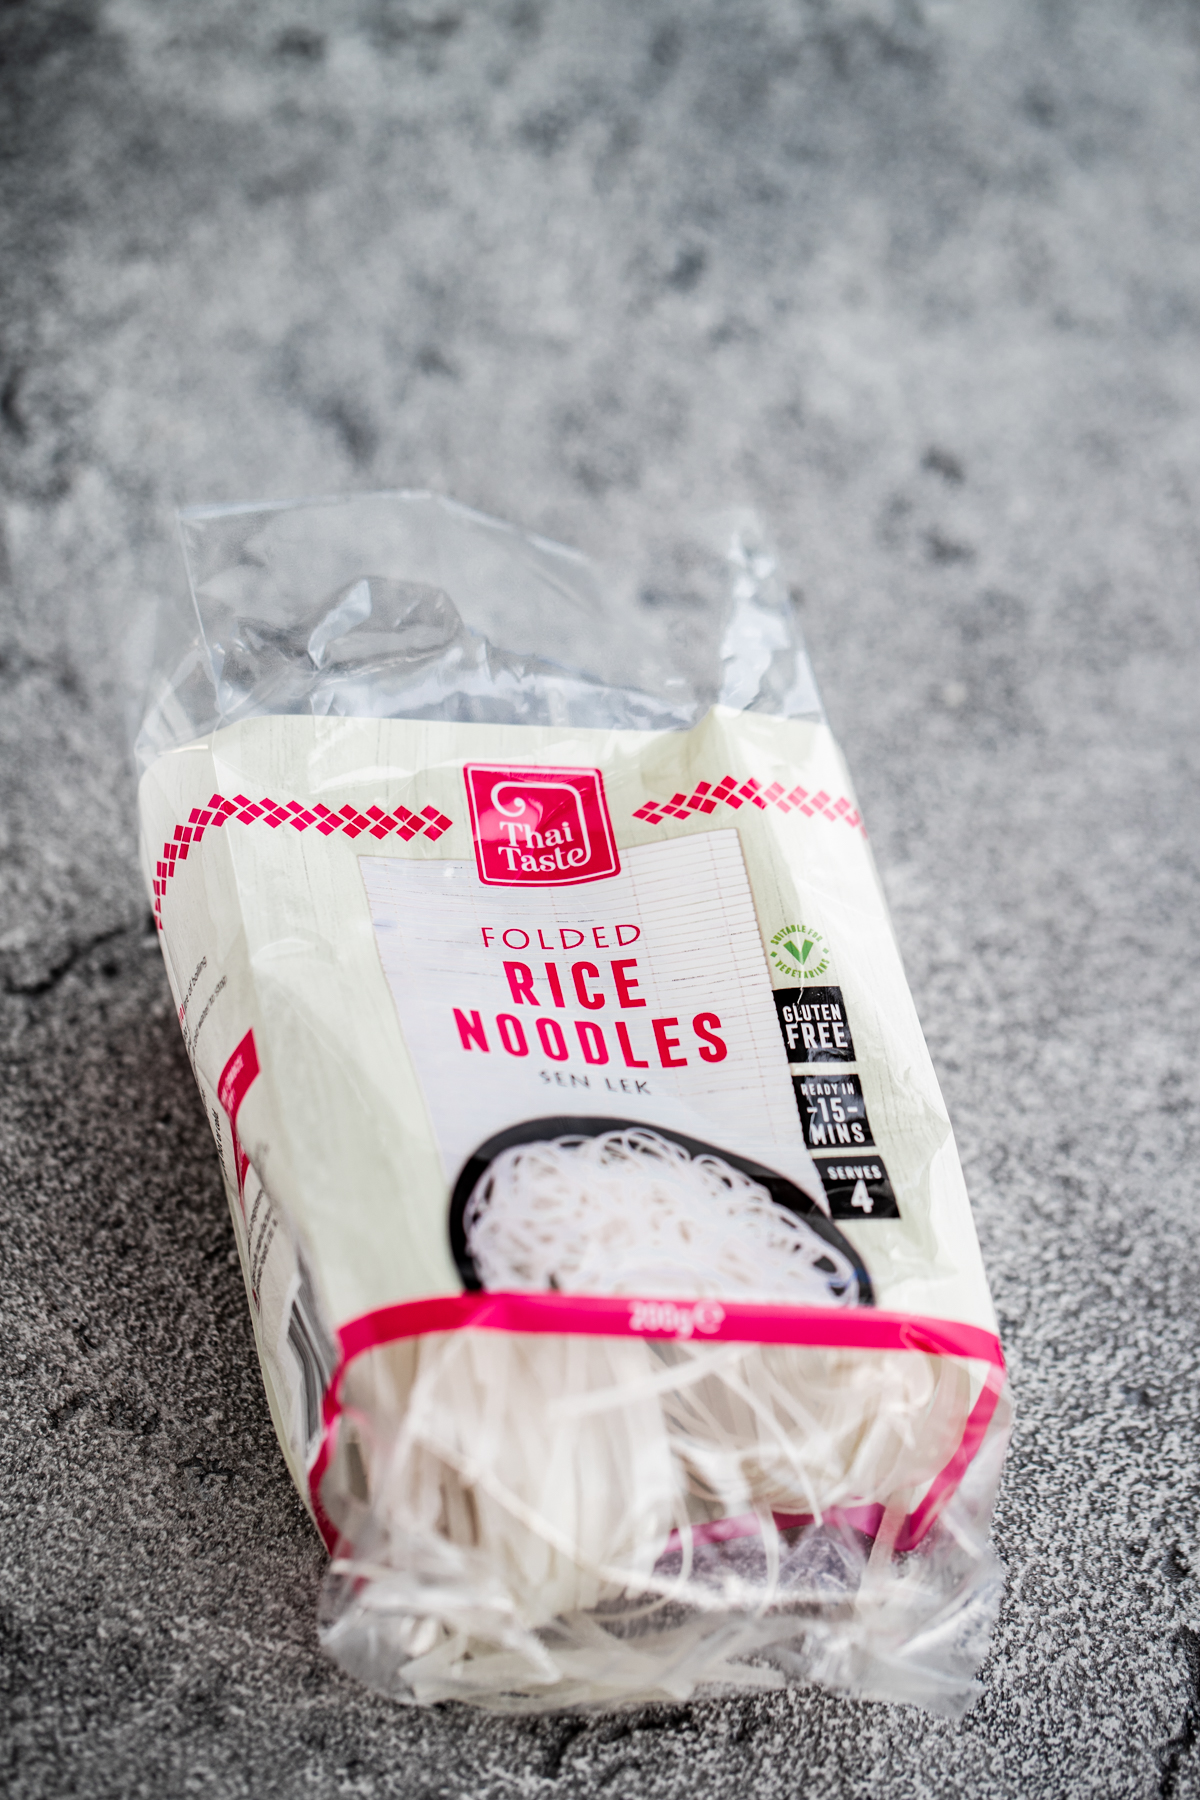 Pack of white rice noodles on a grey background